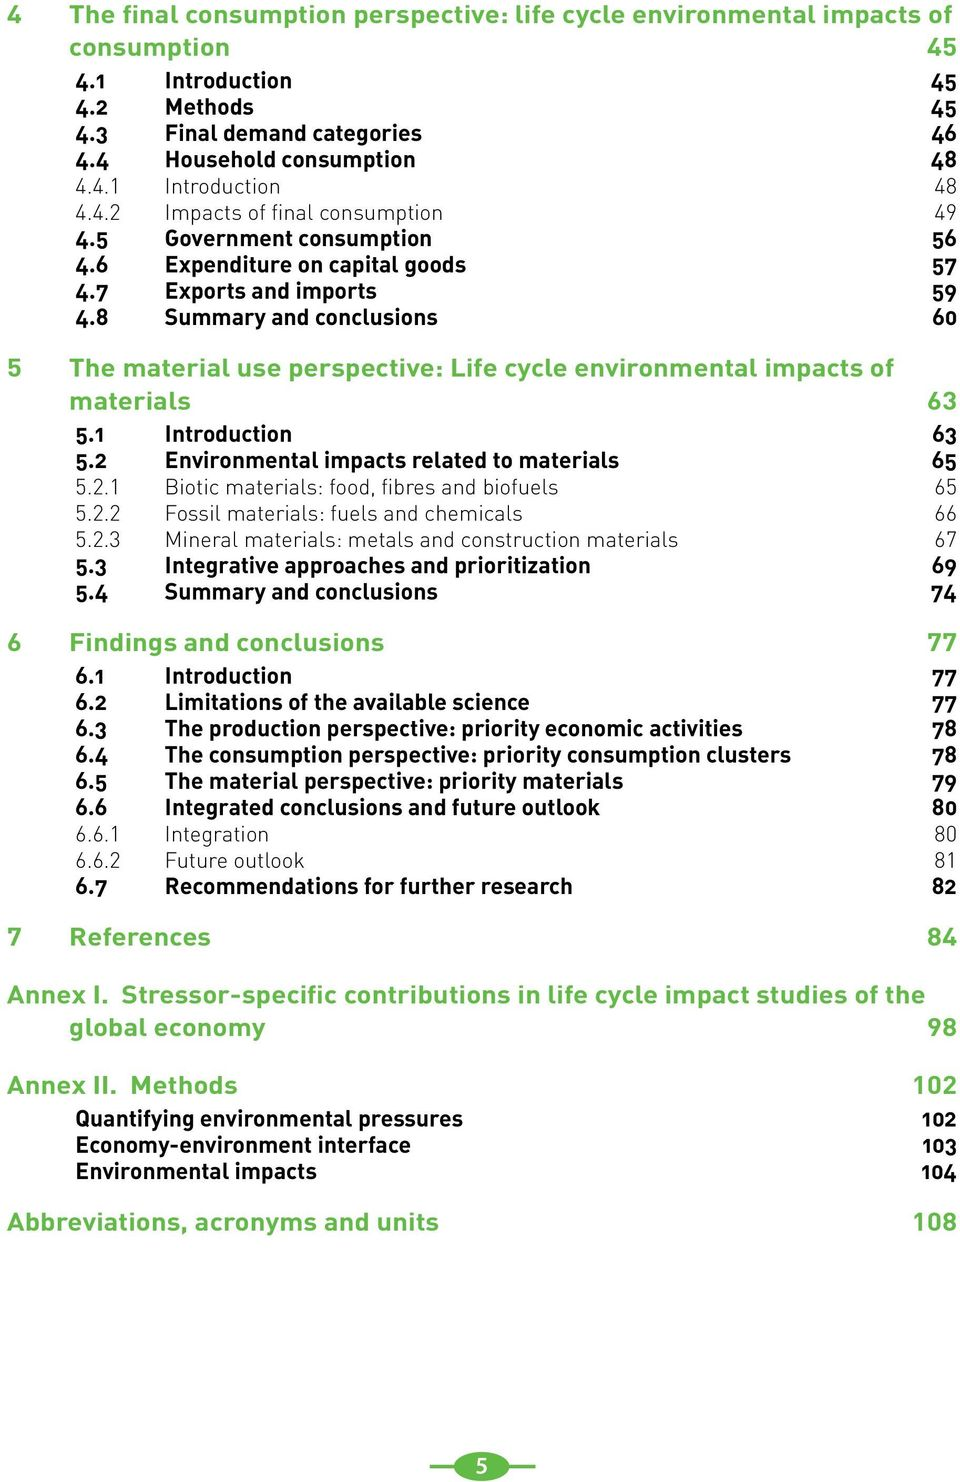 8 Summary and conclusions 60 5 The material use perspective: Life cycle environmental impacts of materials 63 5.1 Introduction 63 5.2 Environmental impacts related to materials 65 5.2.1 Biotic materials: food, fibres and biofuels 65 5.